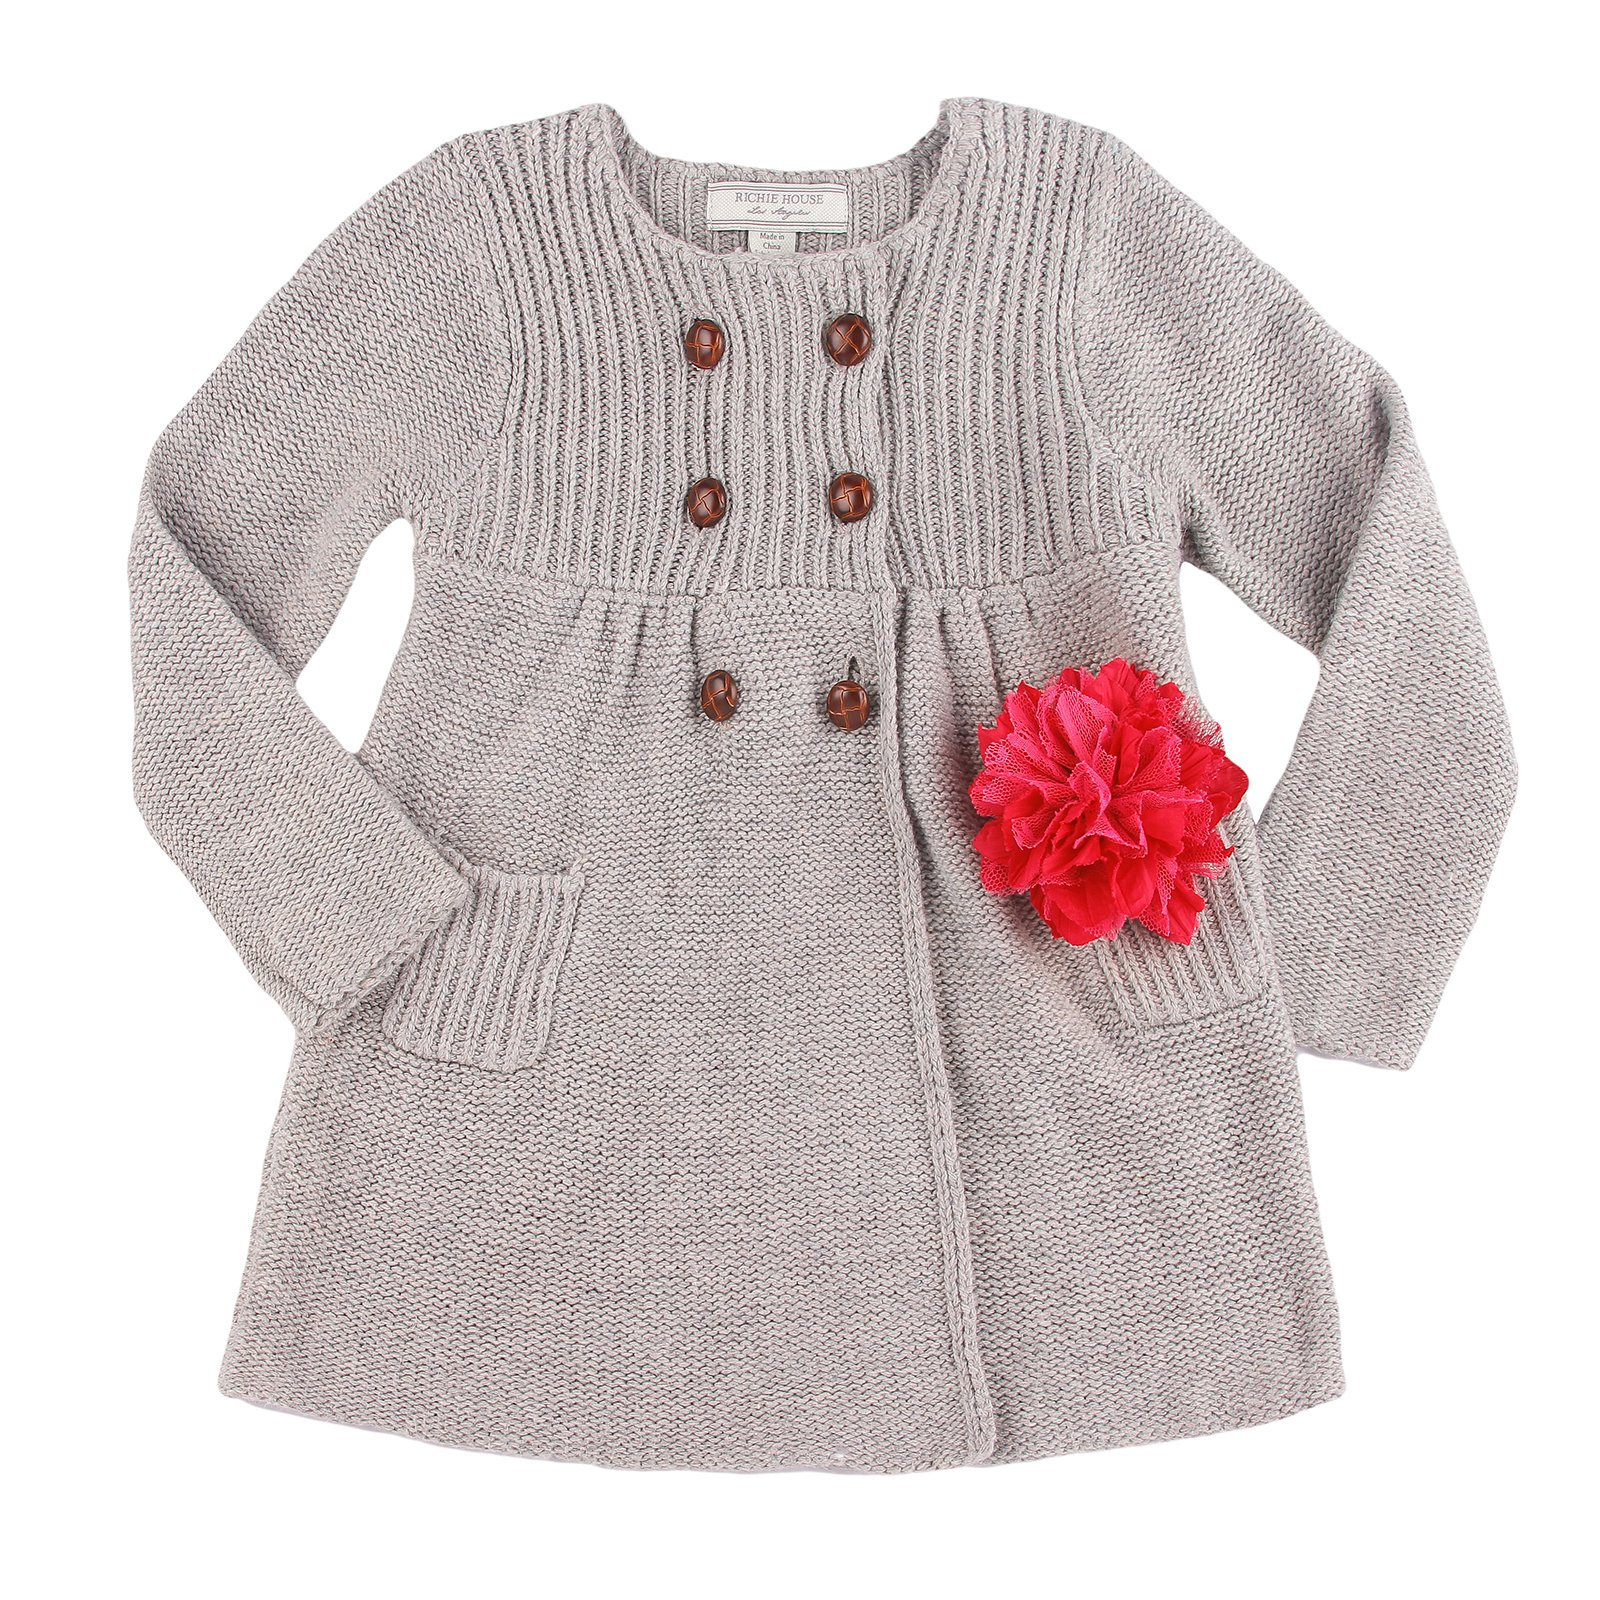 Richie House Girls' Knit Coat with Flower Accessory RH0152-9